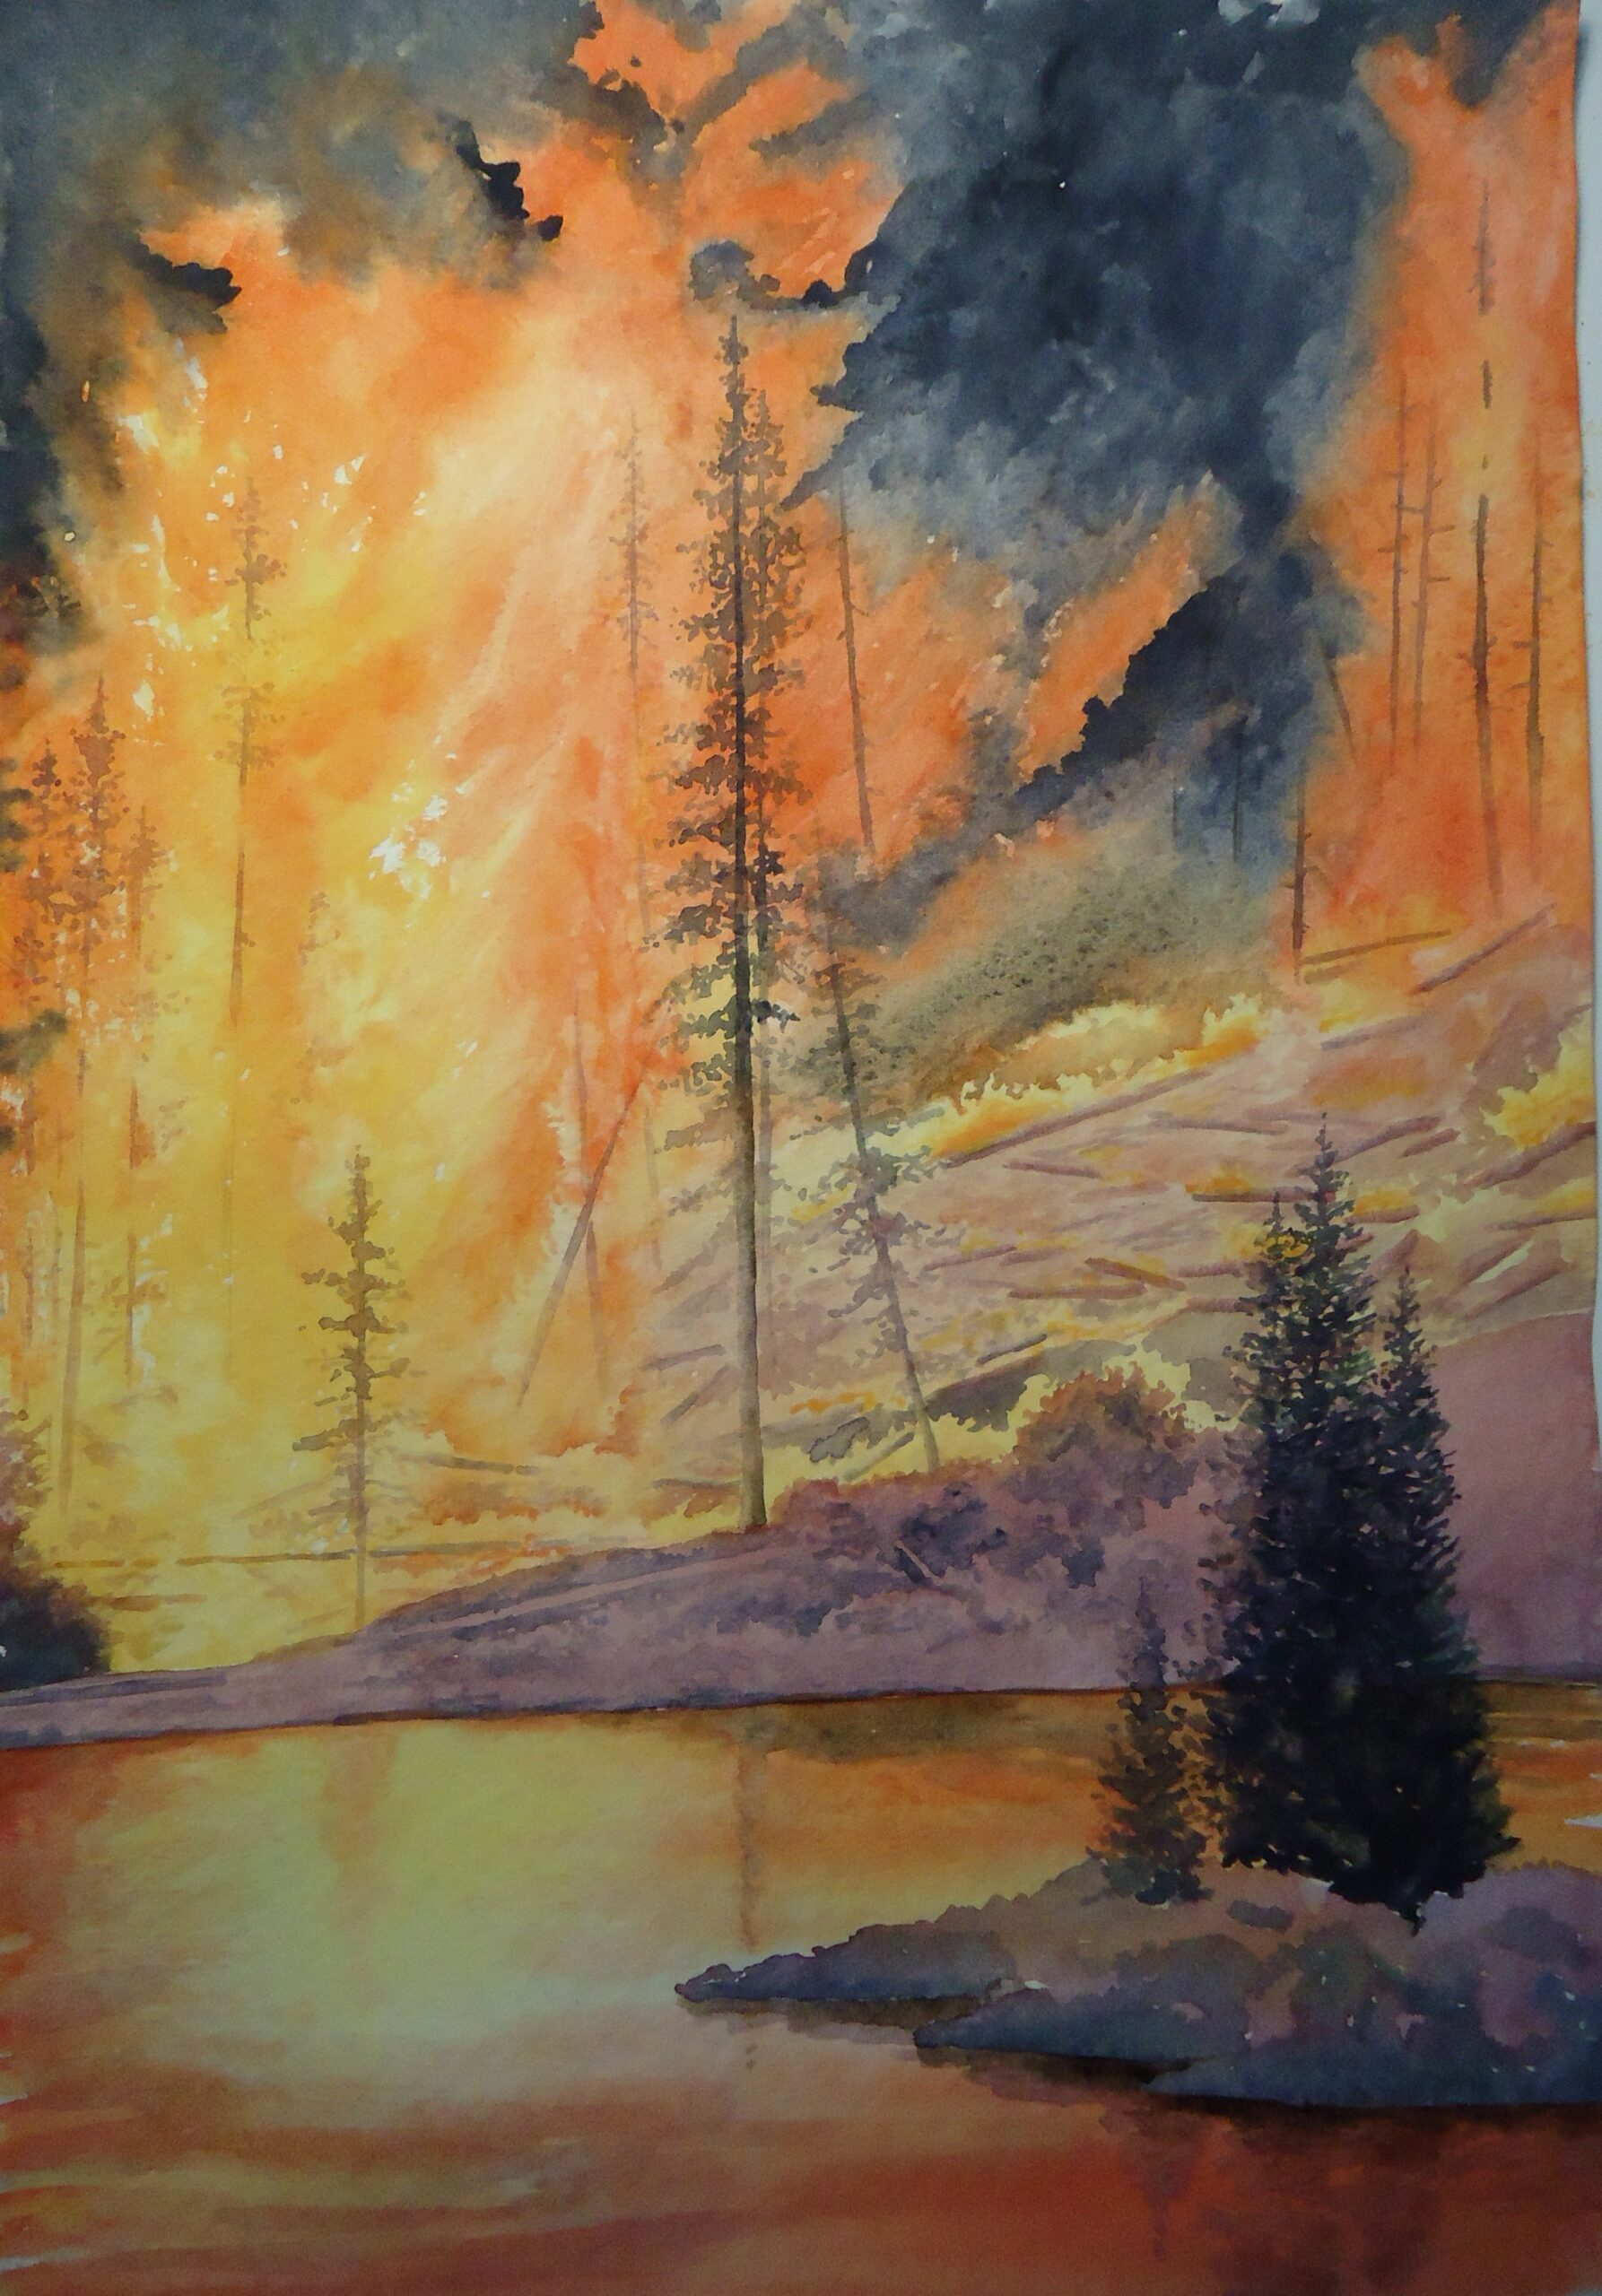 A watercolour painting of some trees surrounding a lake, with fire ravaging through the trees in the distance by Keith Cains.